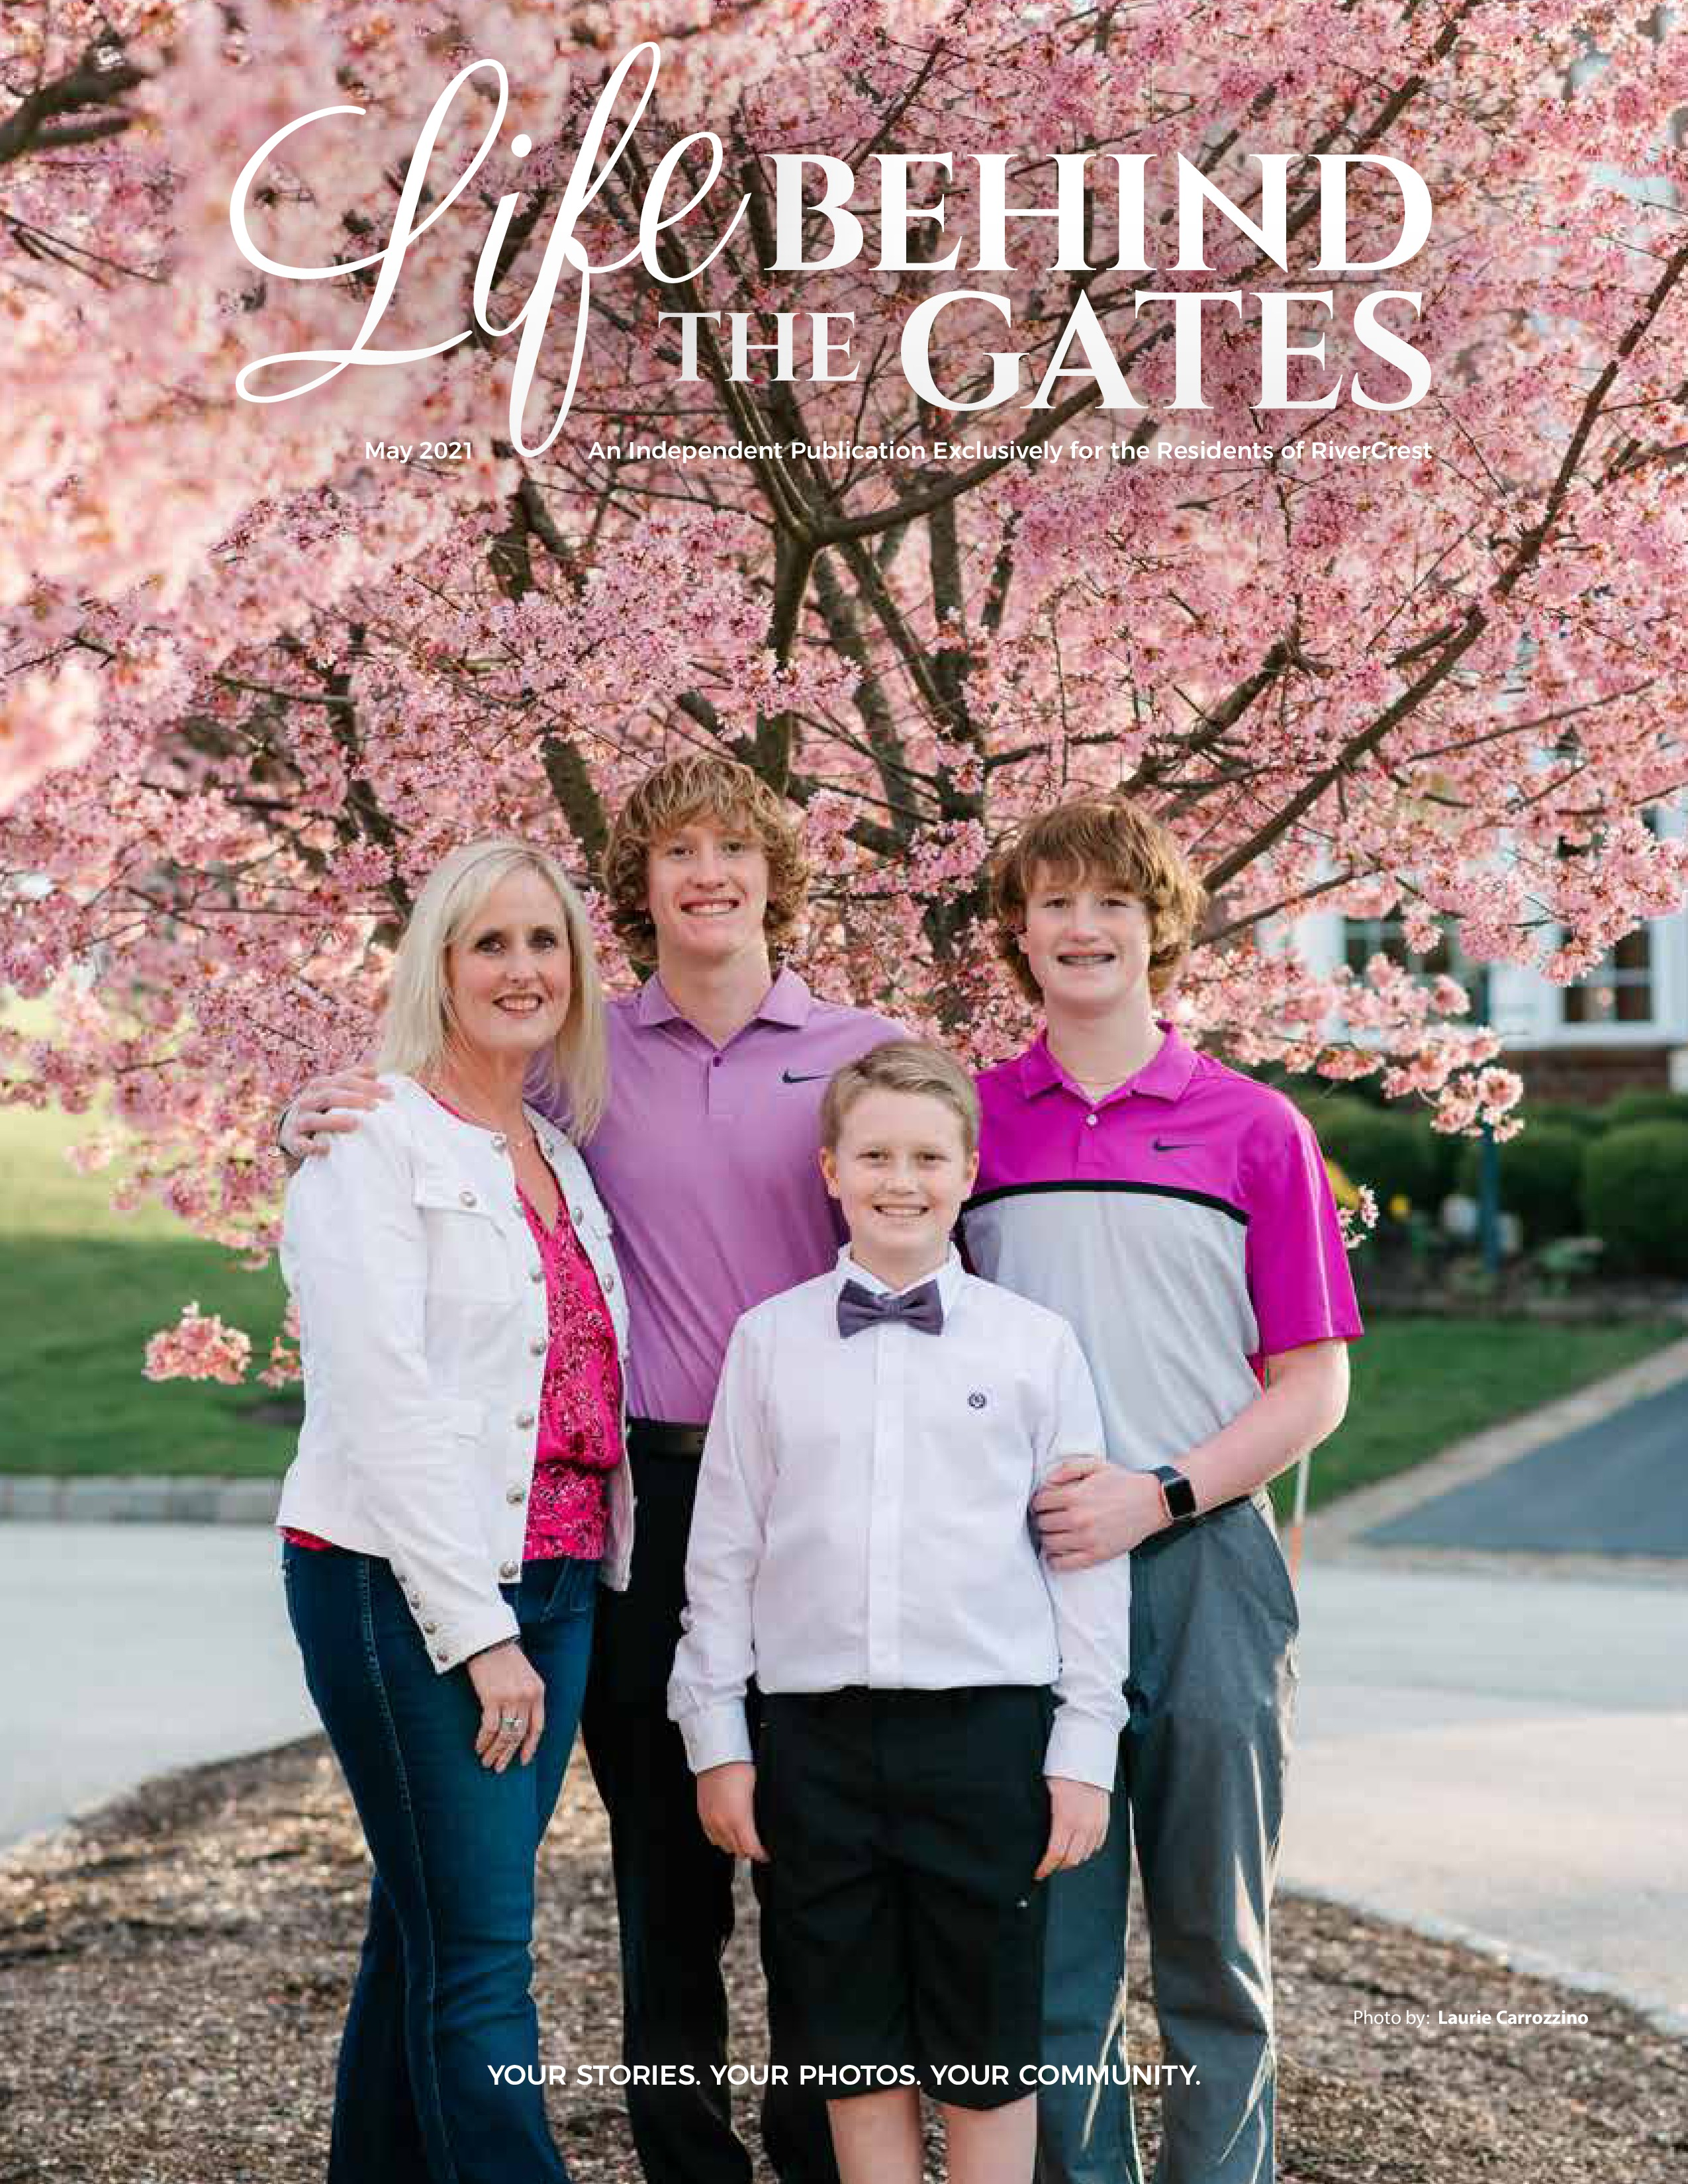 Life Behind the Gates 2021-05-01